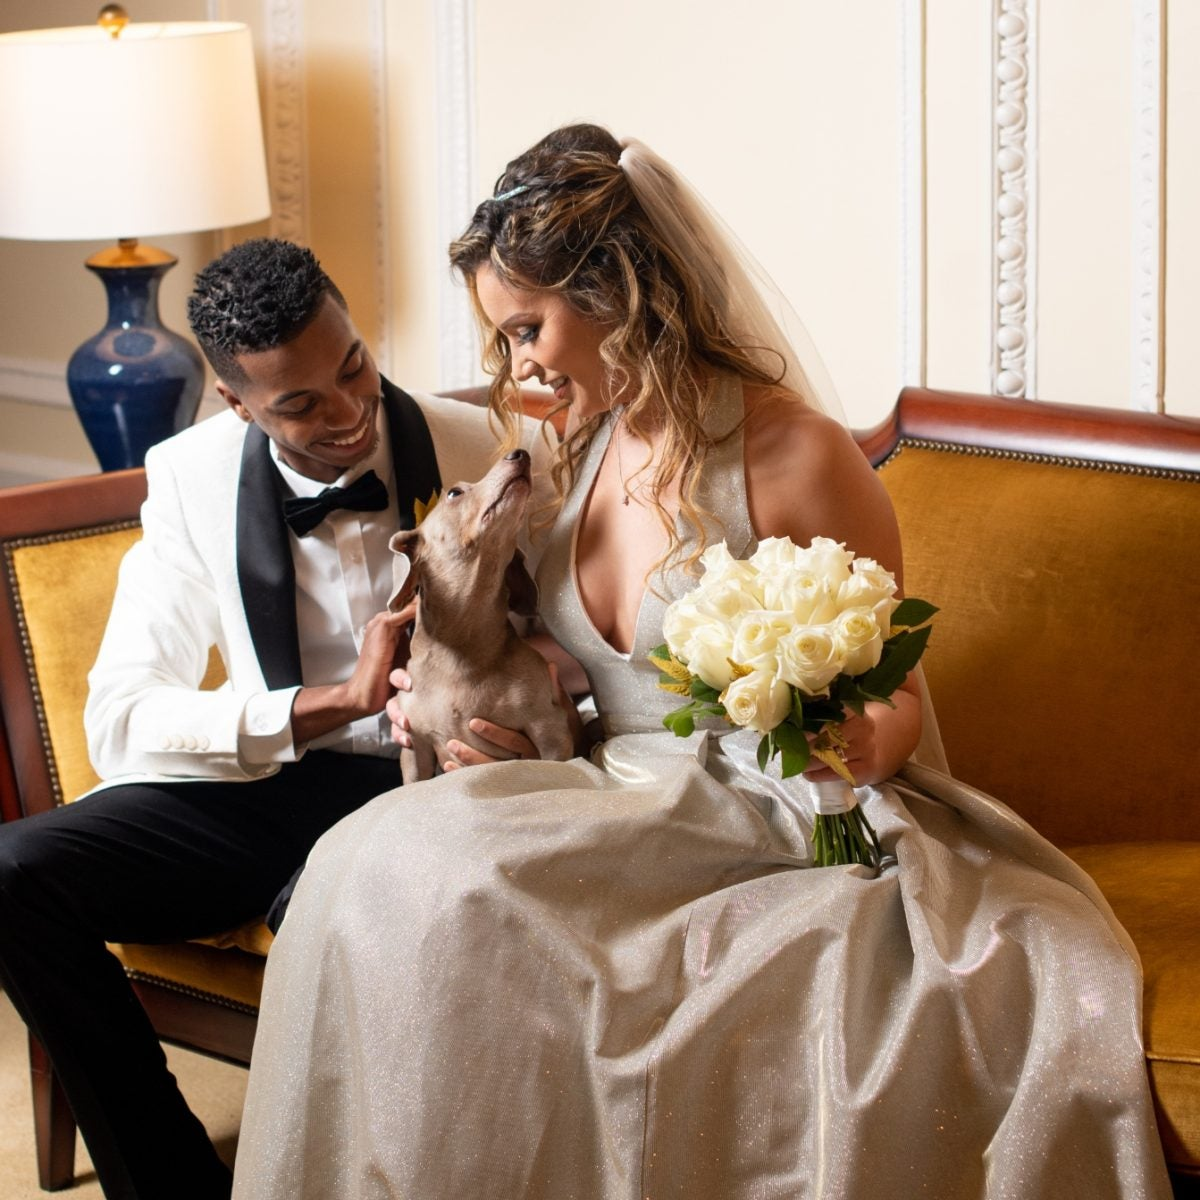 Bridal Bliss: Mariah And Corrinn's Micro Wedding Included Their Parents, Their Pastor, And Their Pet